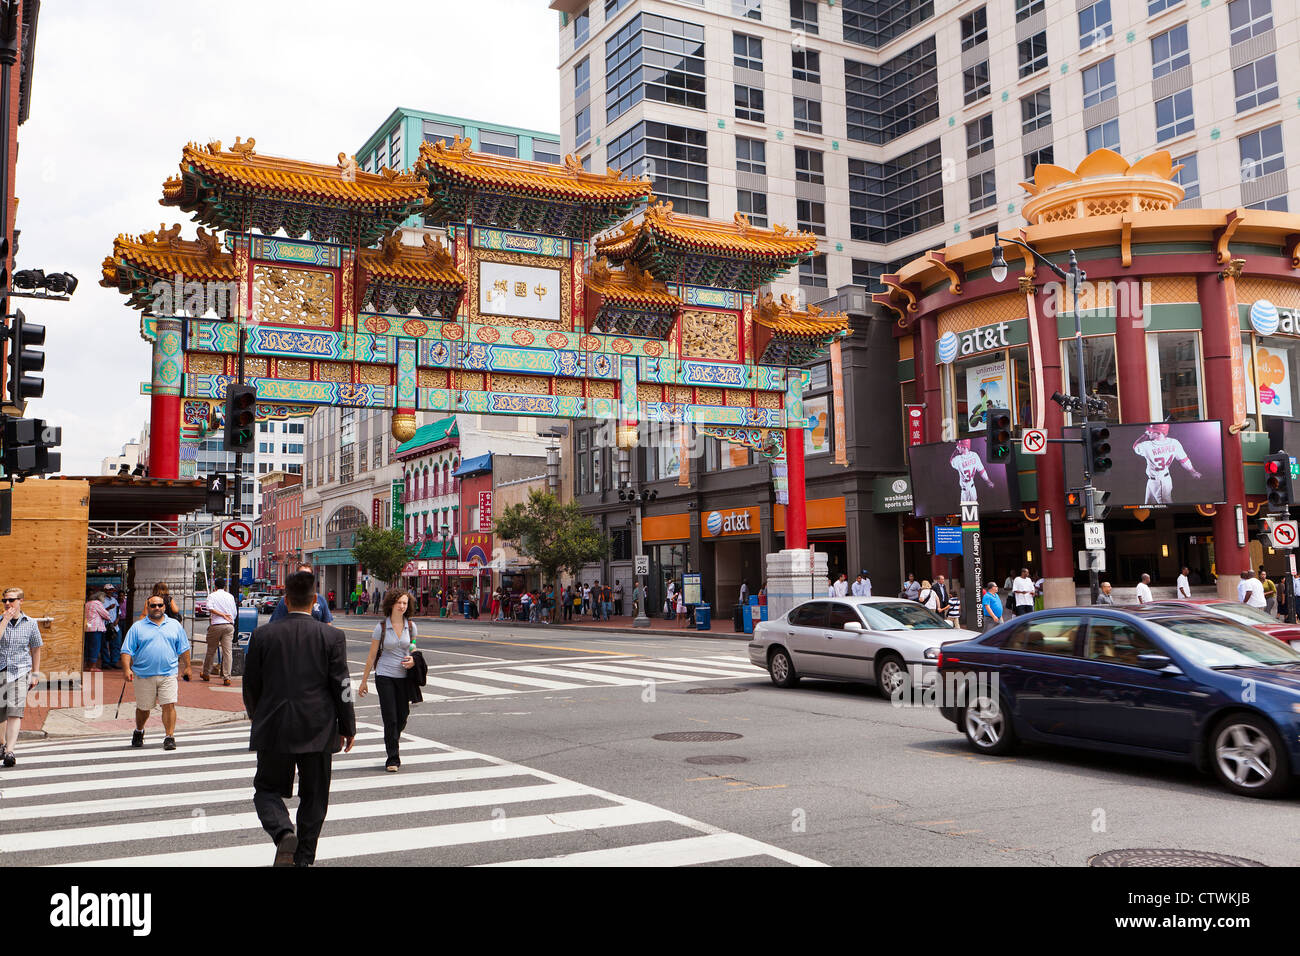 Chinatown, Friendship Archway - Washington, DC USA - Stock Image